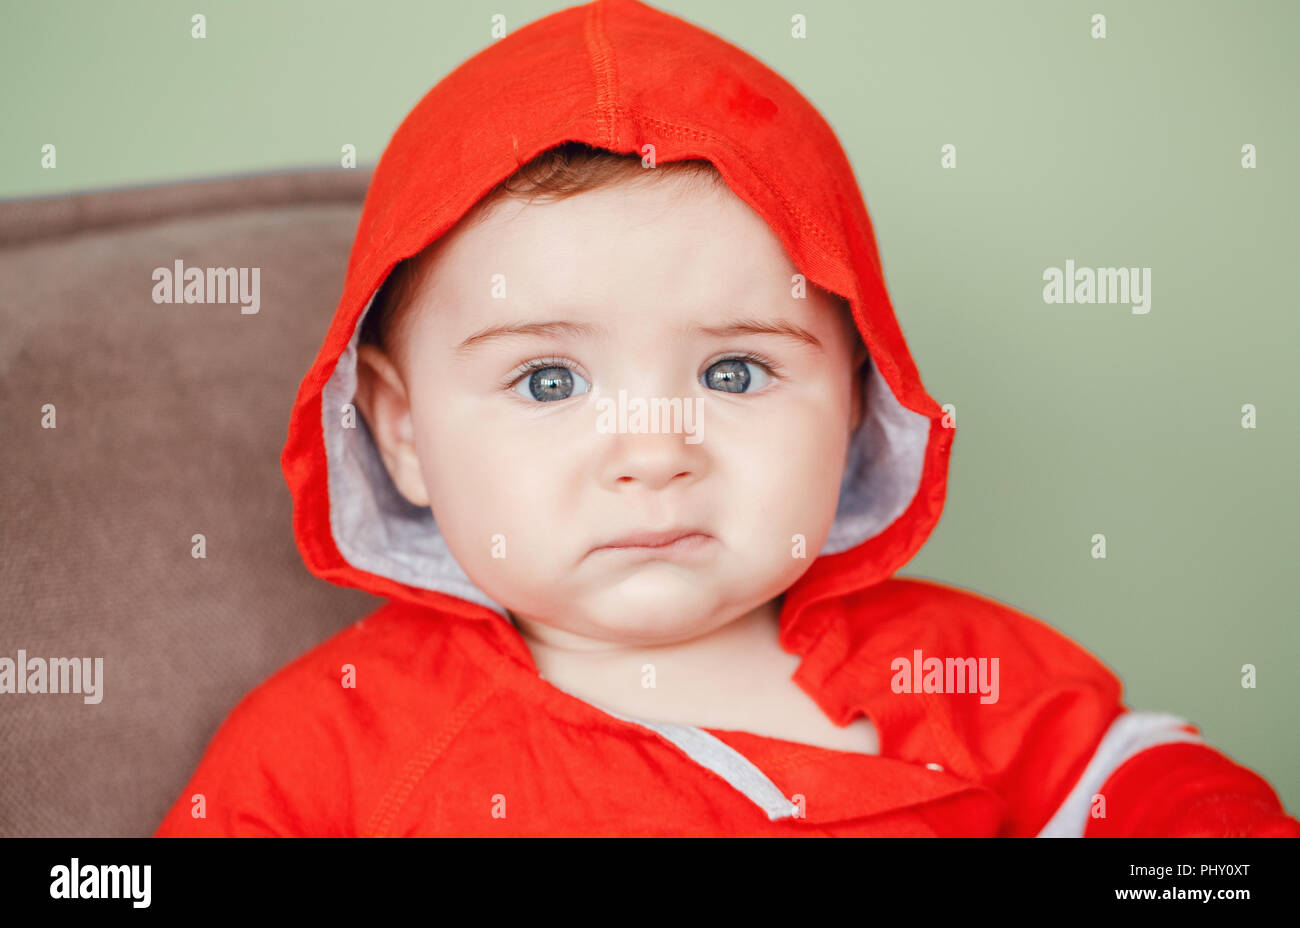 3705ab43a15 Closeup portrait of cute adorable Caucasian upset sad baby boy with blue  eyes